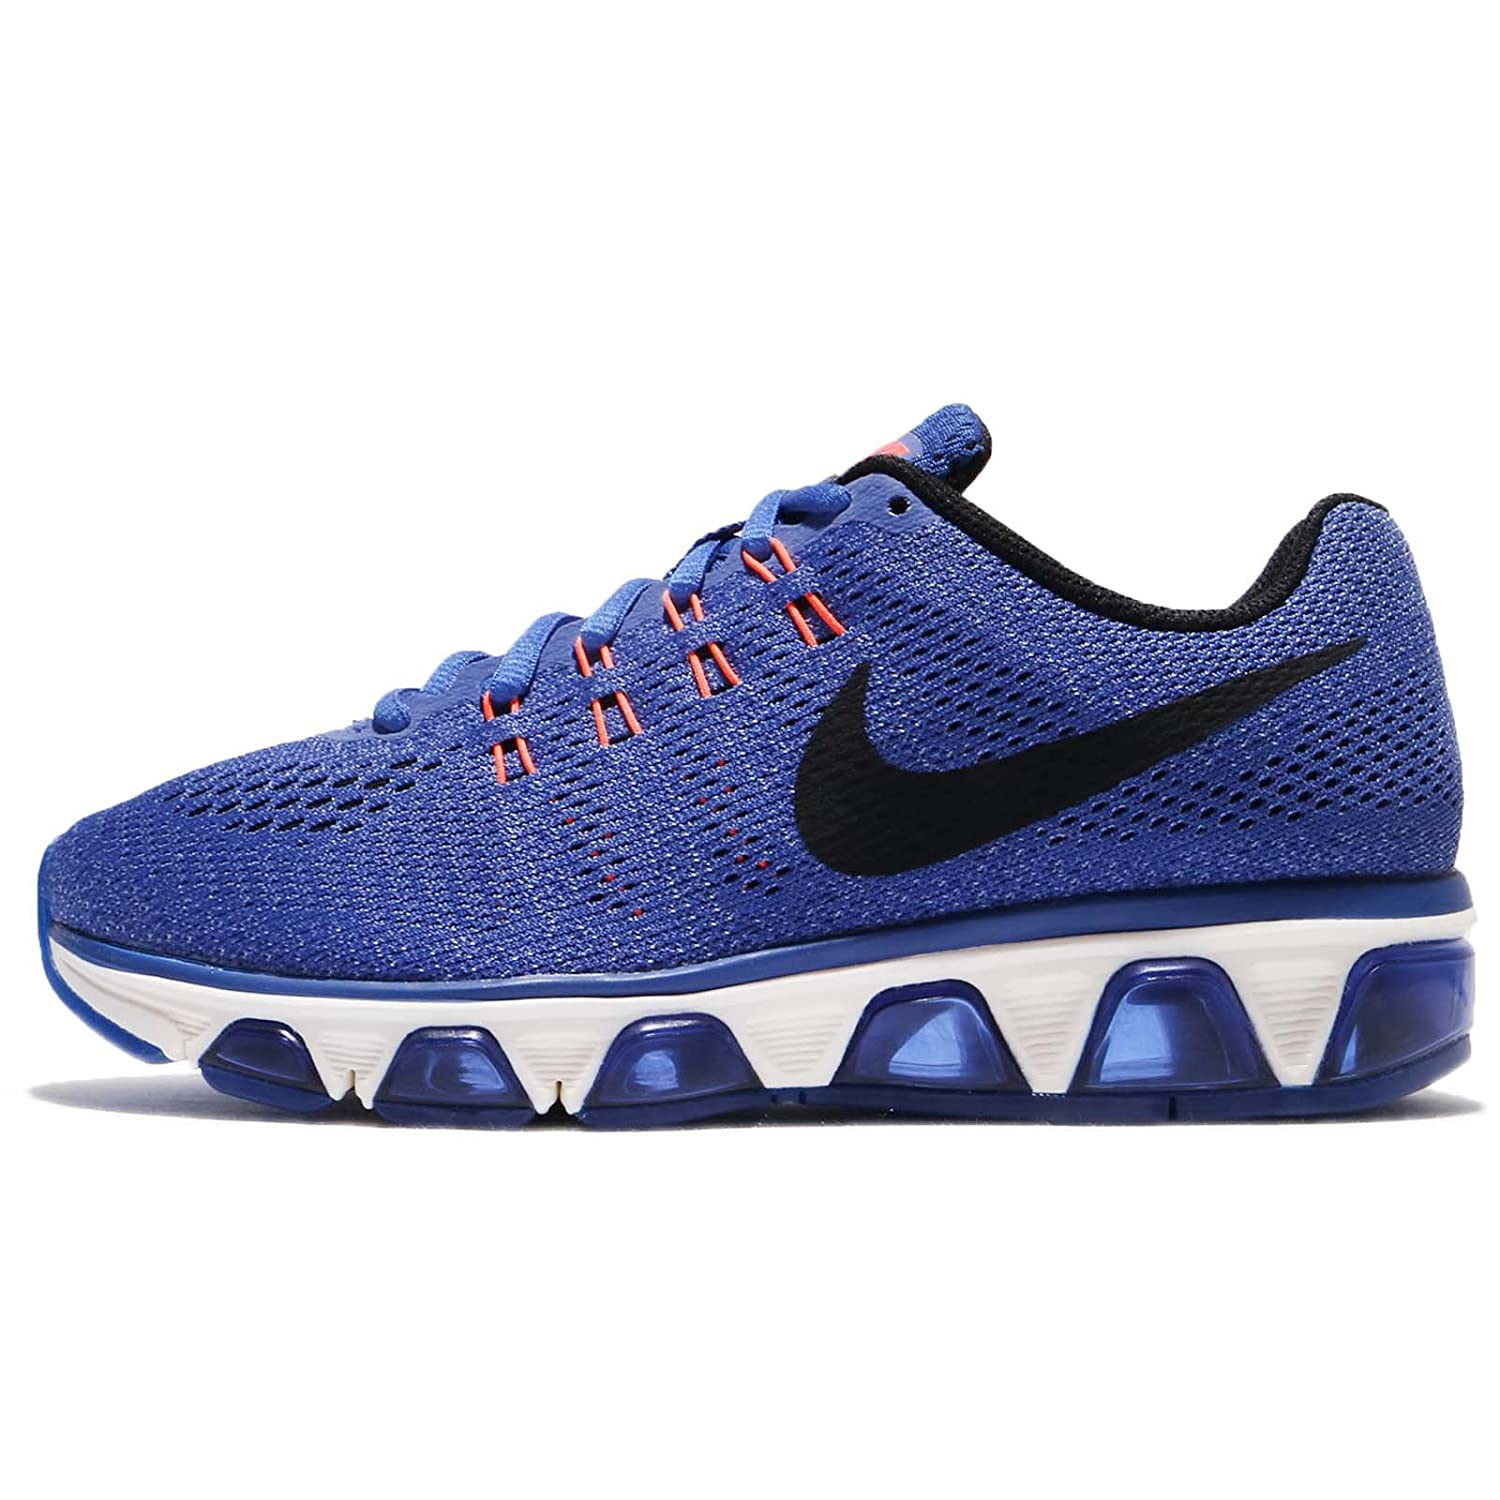 separation shoes 9ca9e aaf20 Amazon.com  Nike AIR MAX TAILWIND 8 womens running-shoes 805942-408 5 -  RACER BLUE CHALK BLUE HYPER ORANGE BLACK  Sports   Outdoors